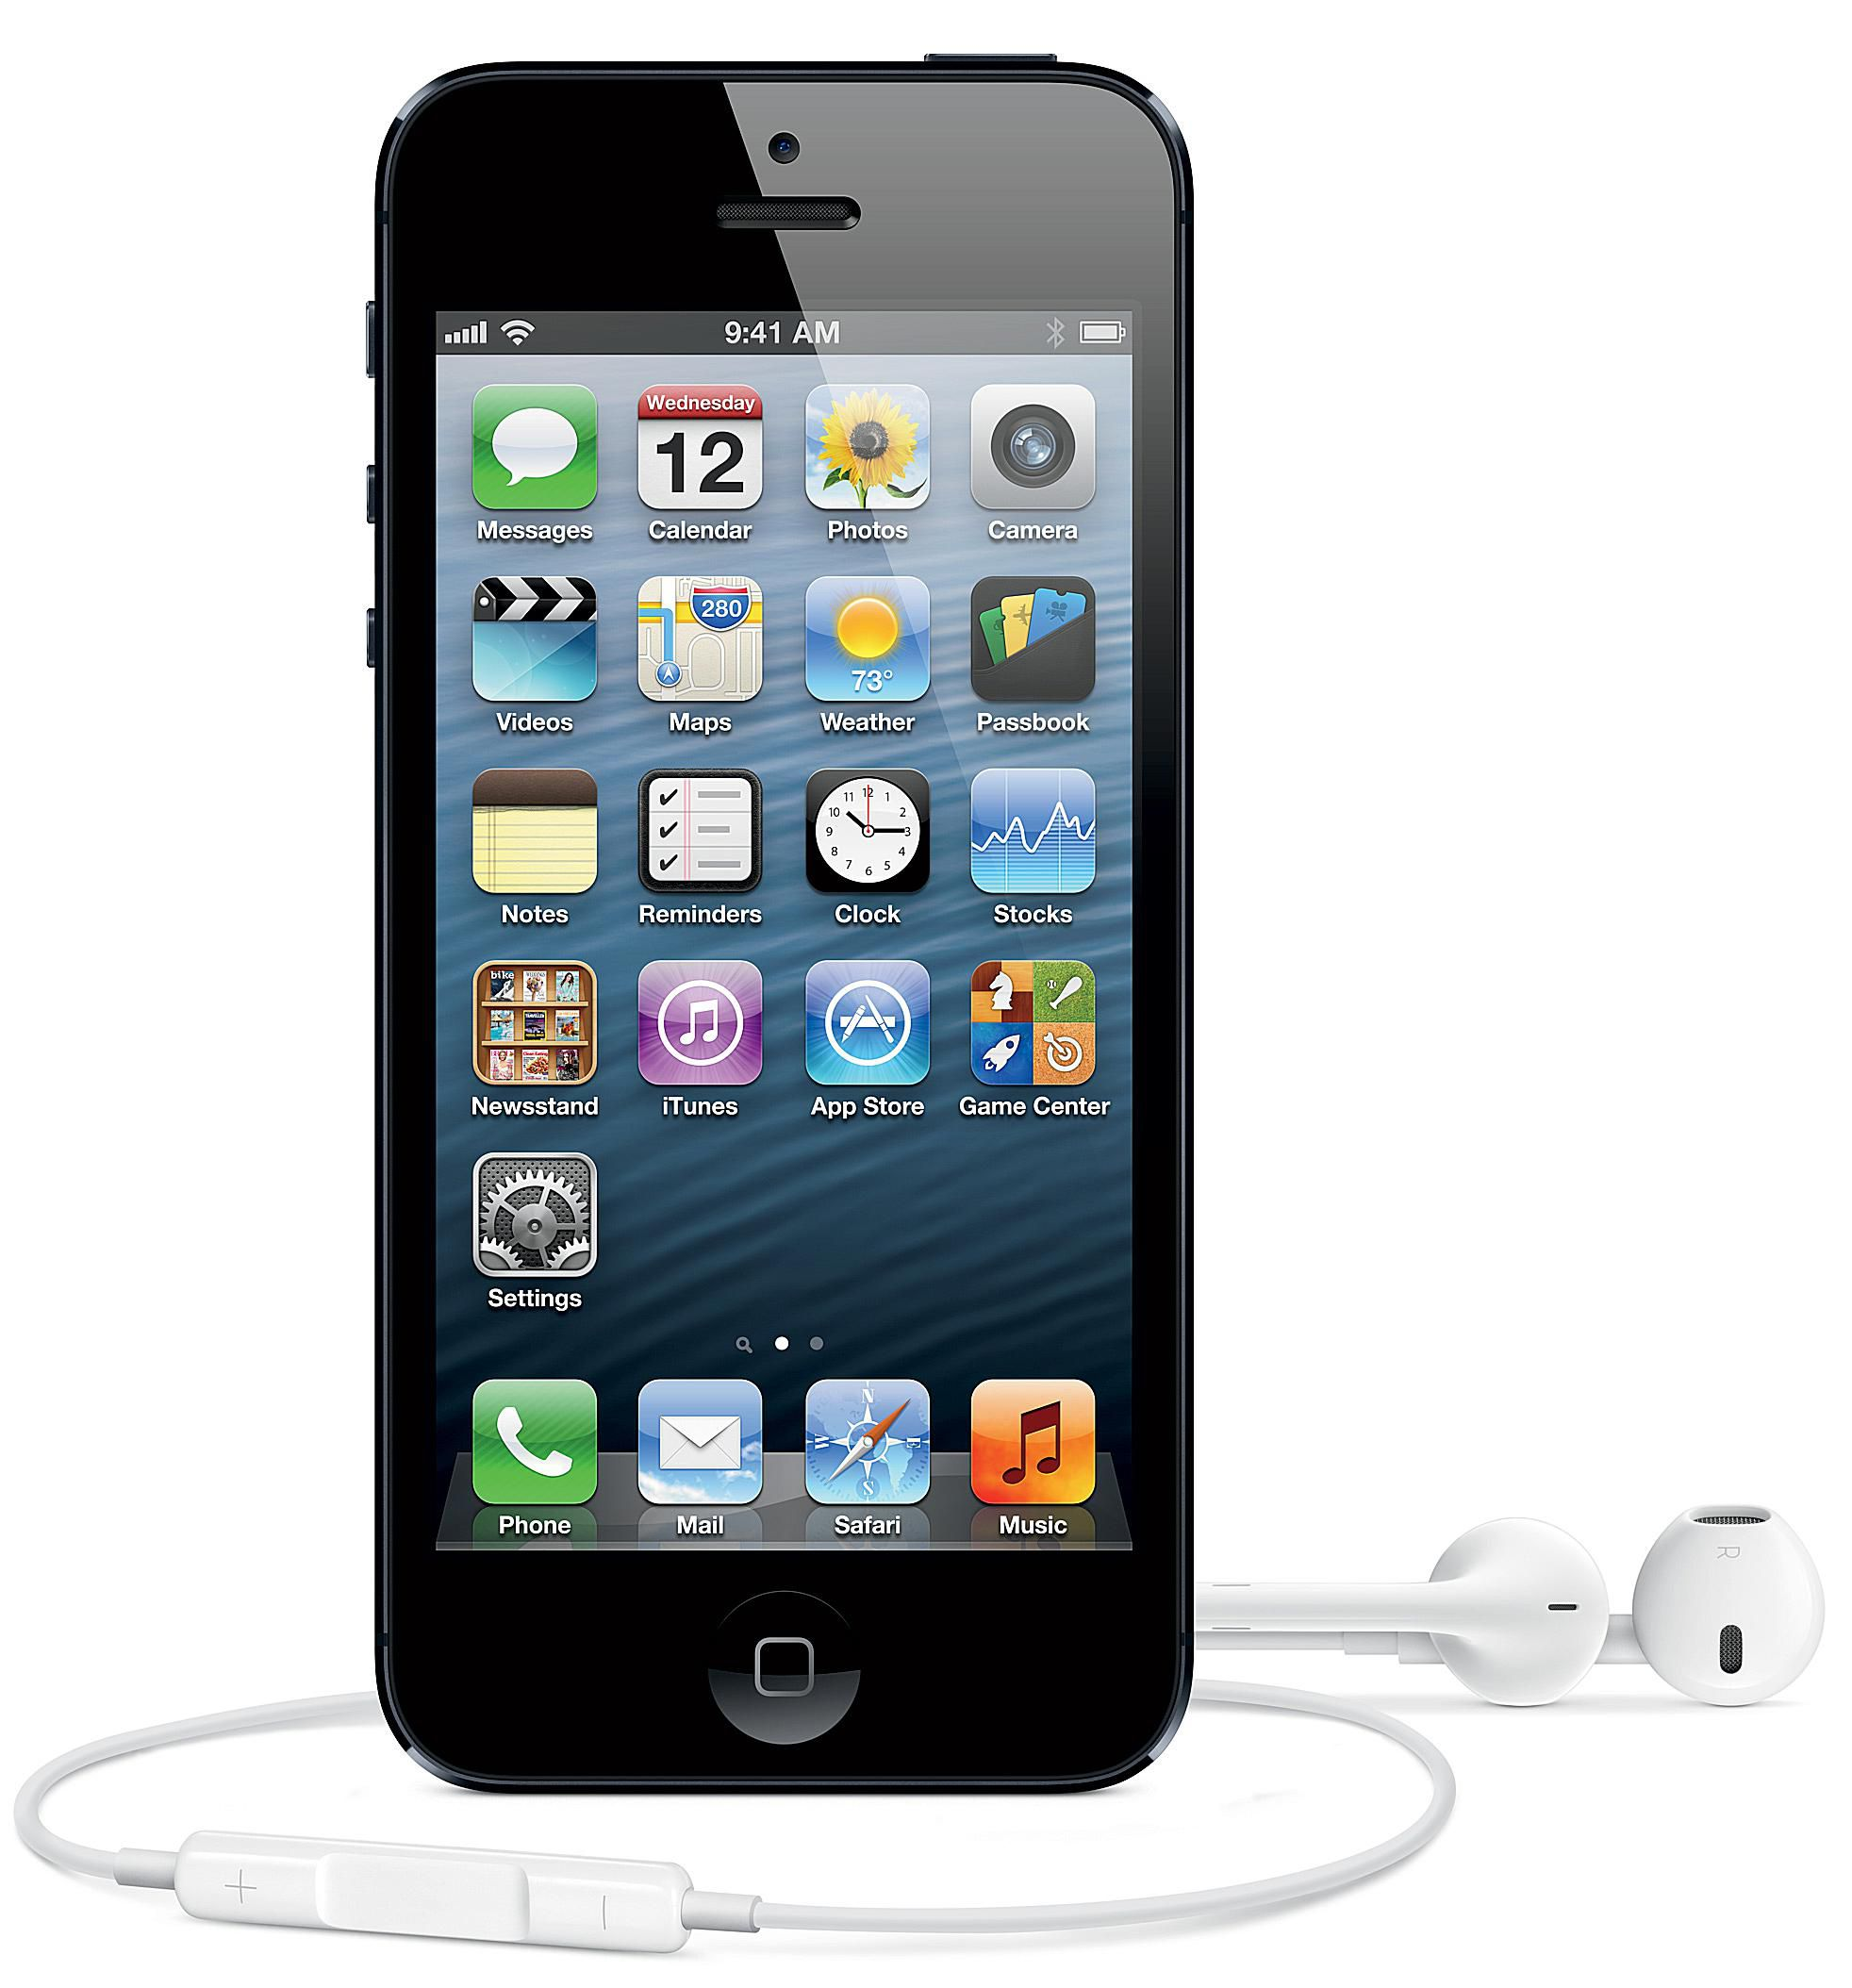 Whats New In The IPhone 5